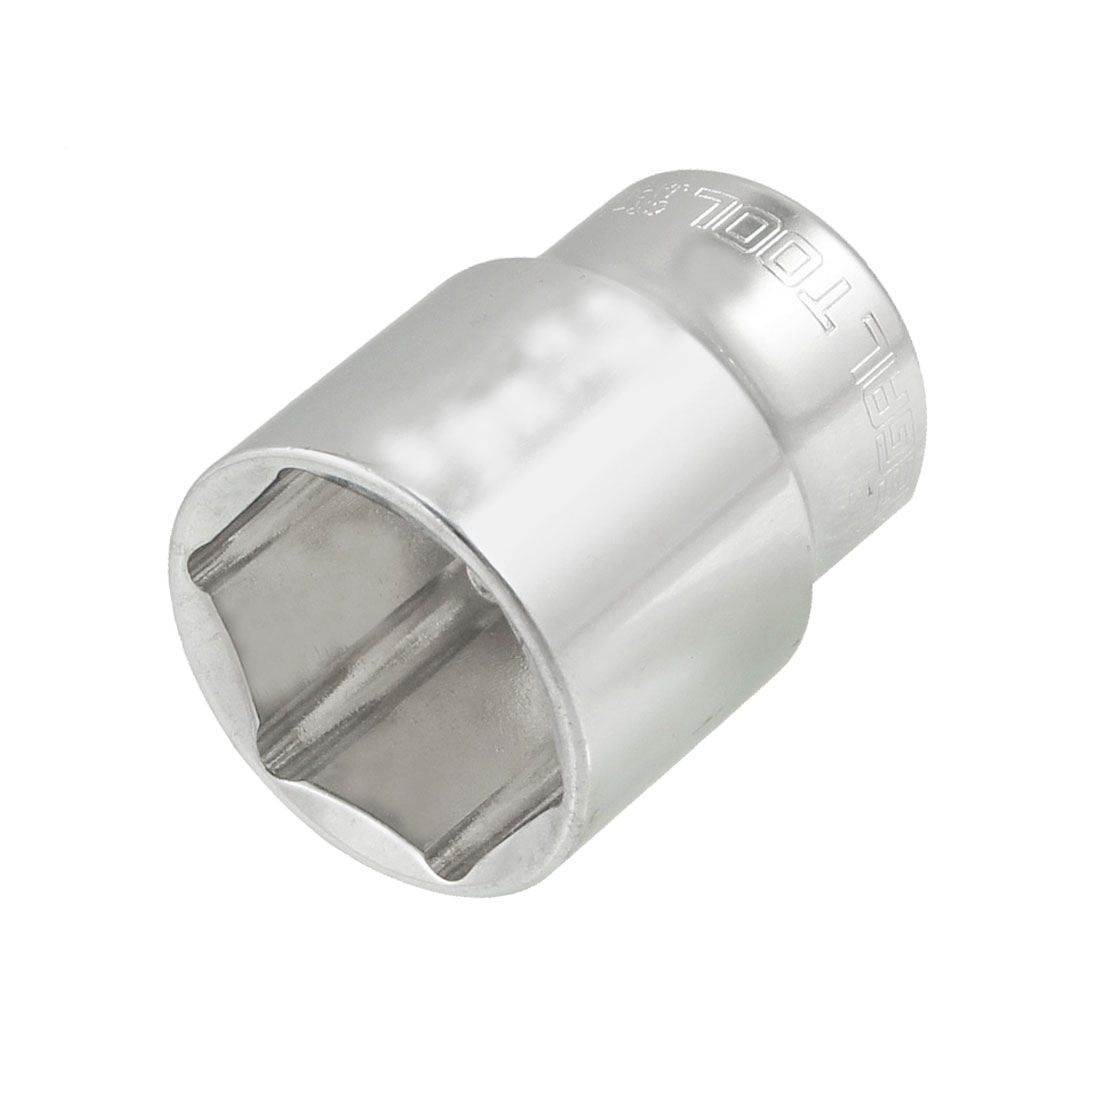 "26mm Hex 1/2"" Square Drive Chrome Plated Metal 6 Points Socket"